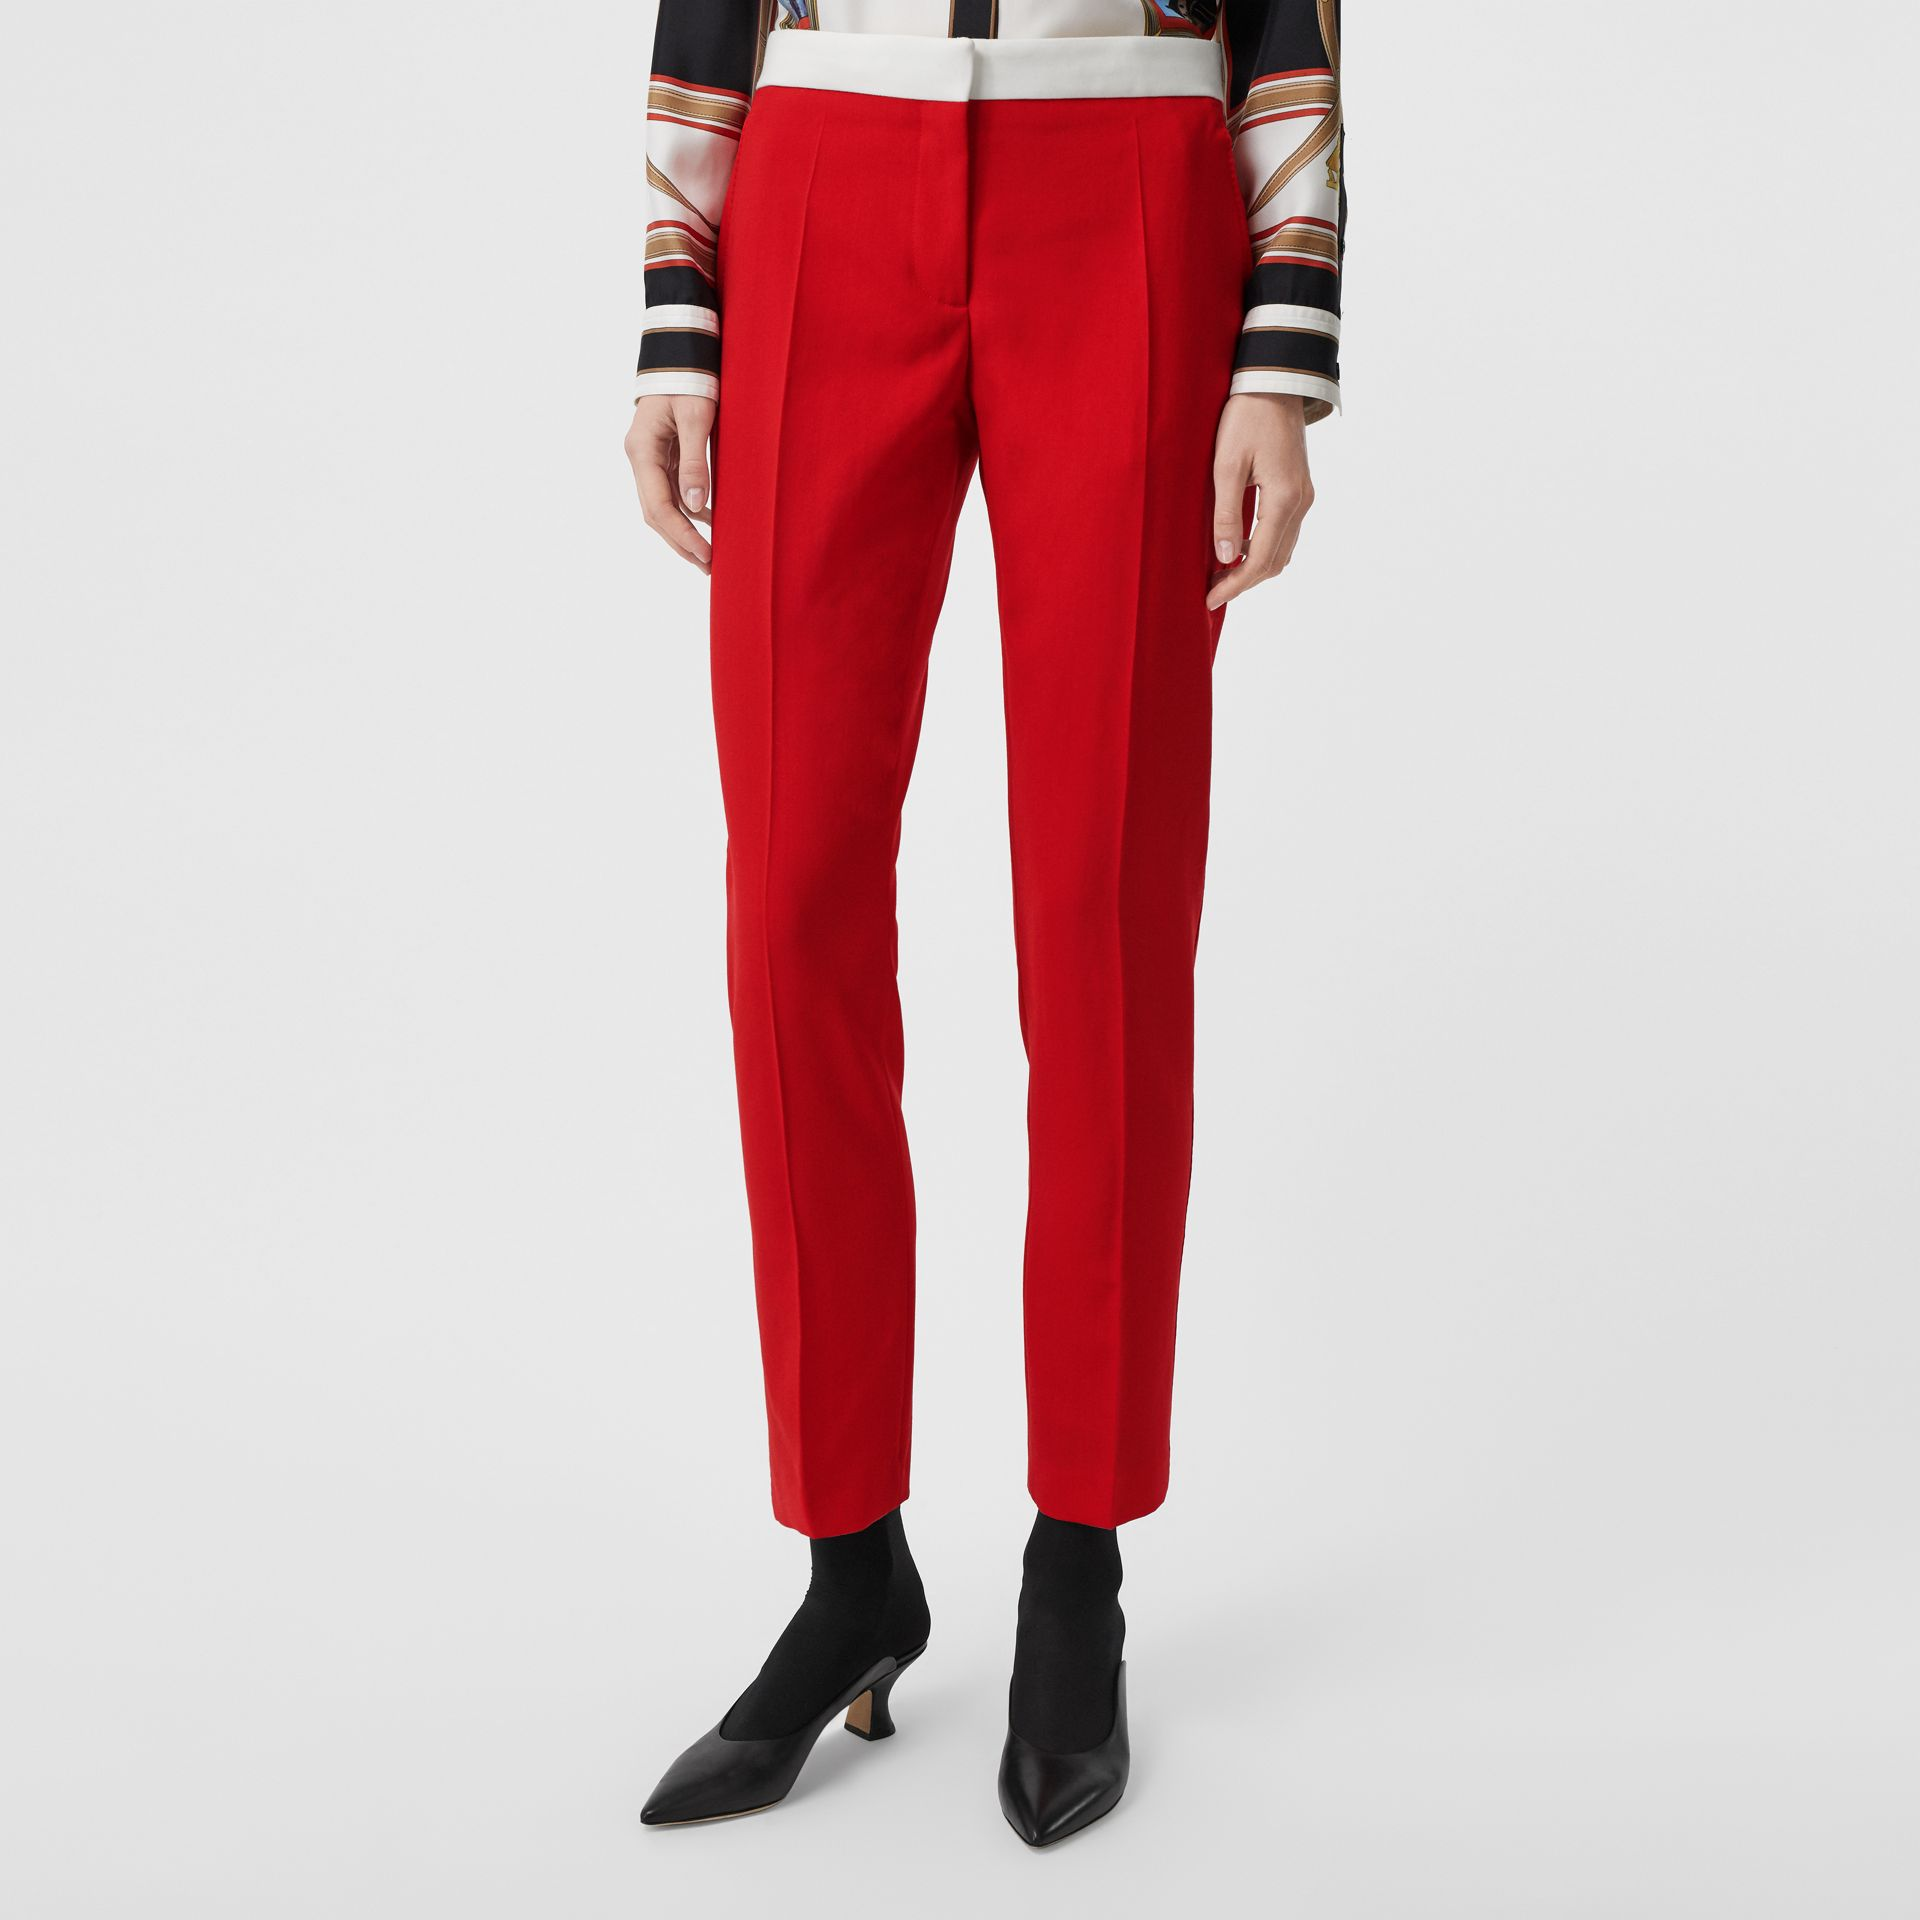 Two-tone Wool Tailored Trousers in Bright Red - Women | Burberry - gallery image 4